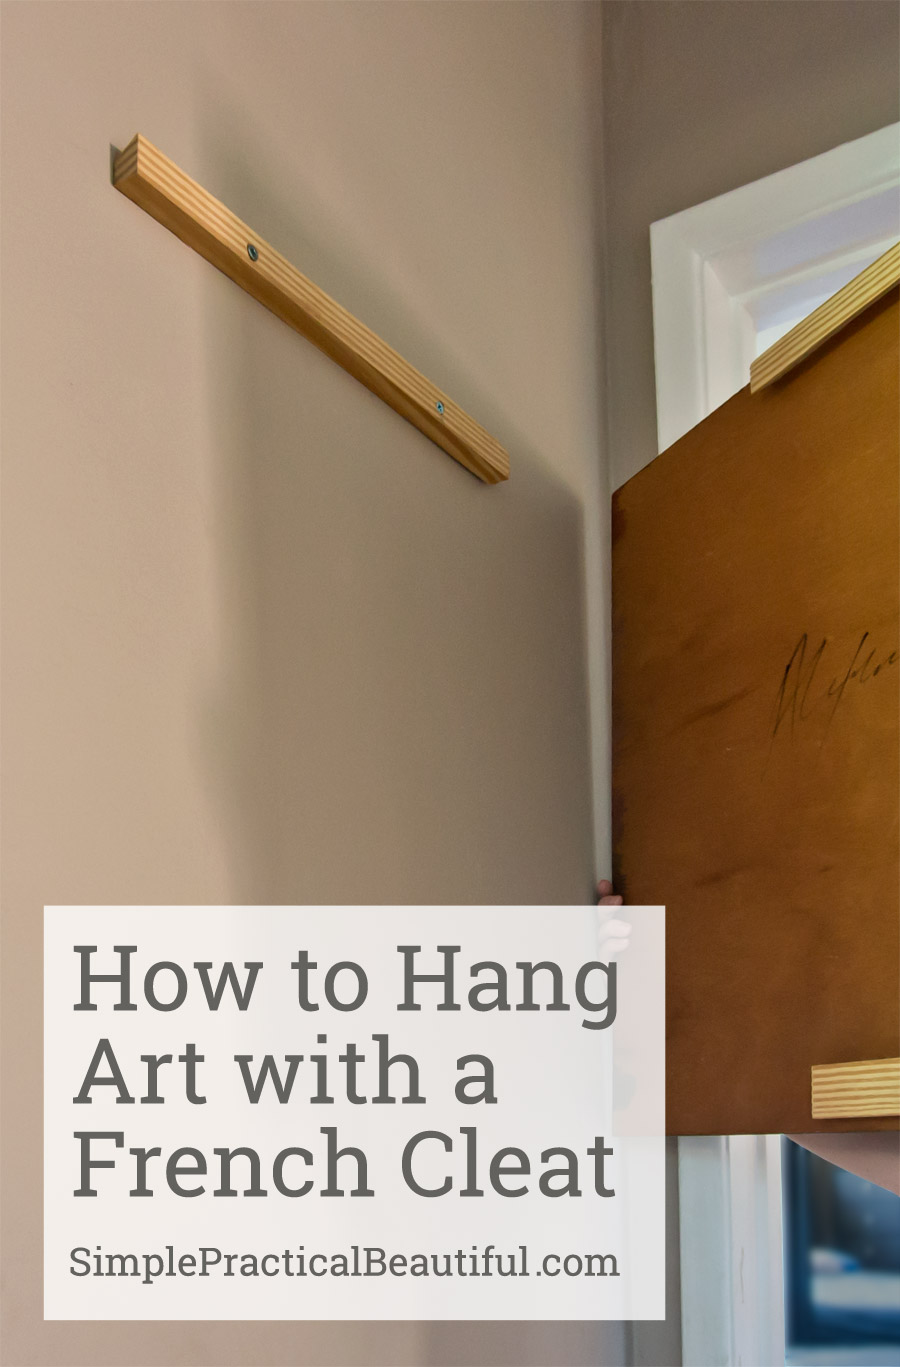 DIY french cleats - a reliable, easy, and cheap way to hang your favorite artwork